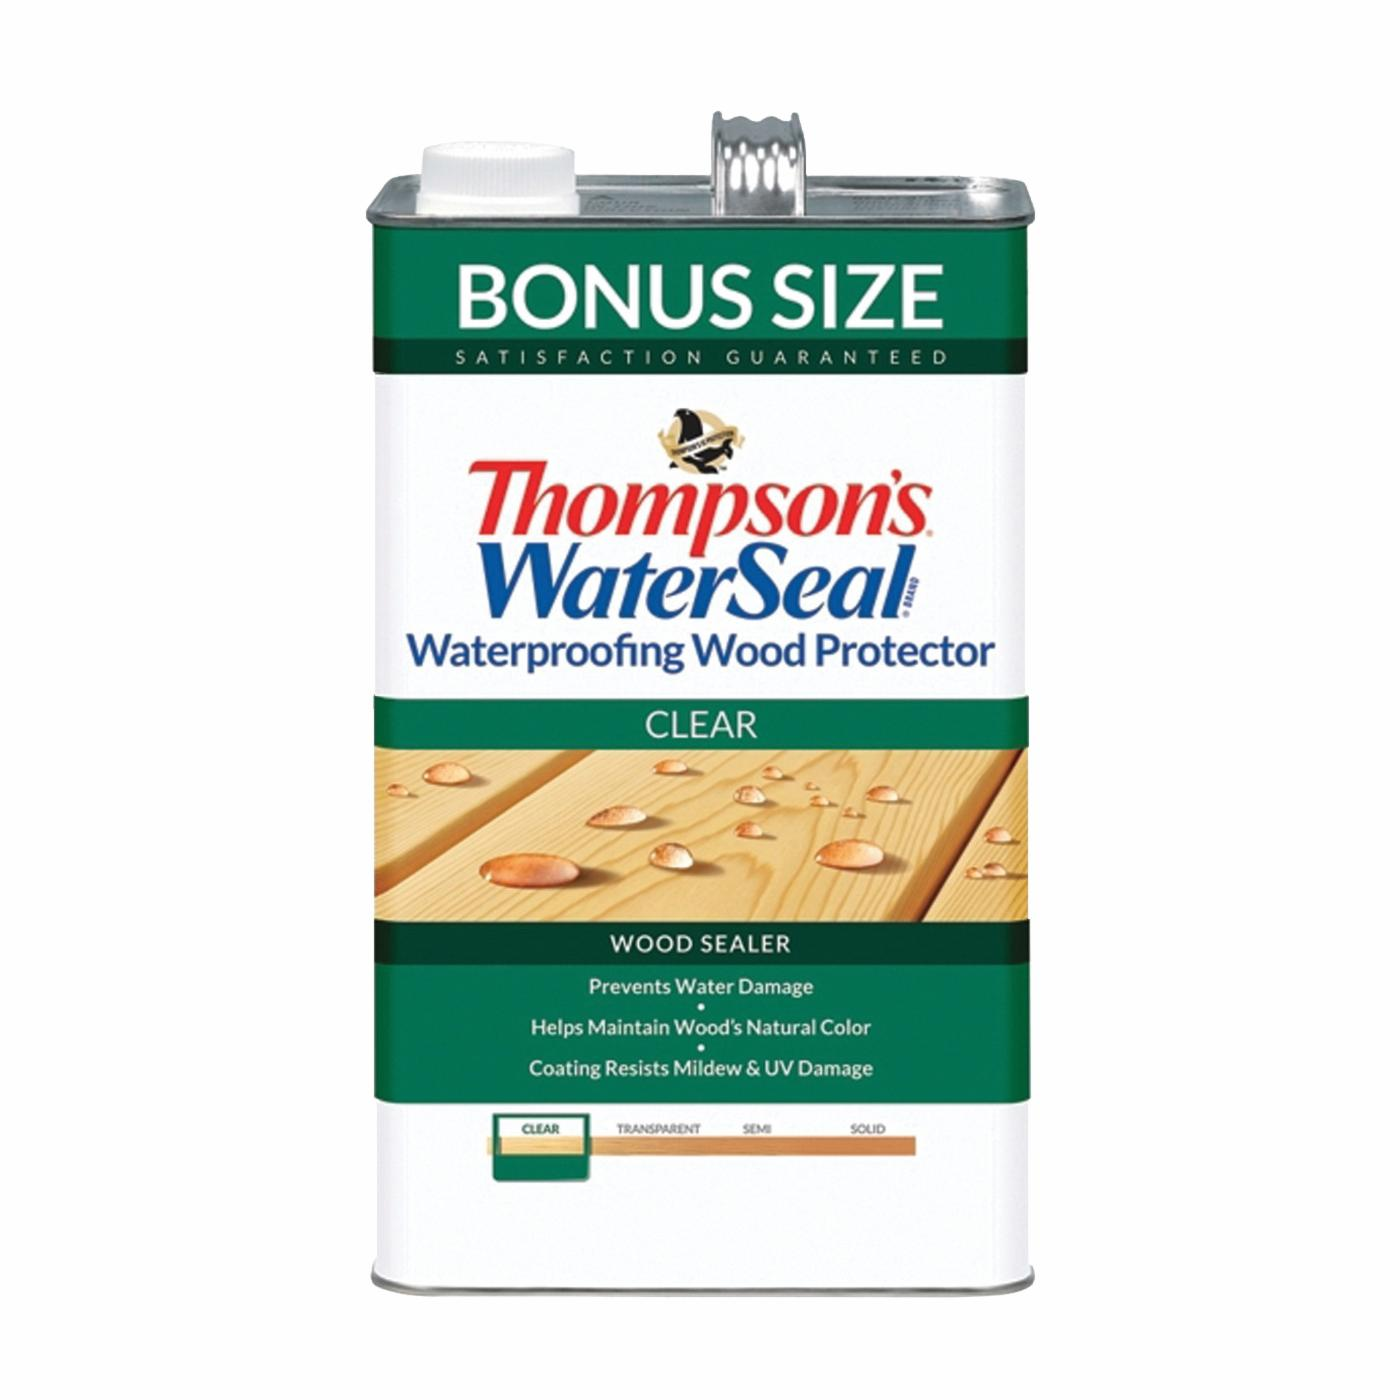 Thompson's Waterseal TH.021802-03